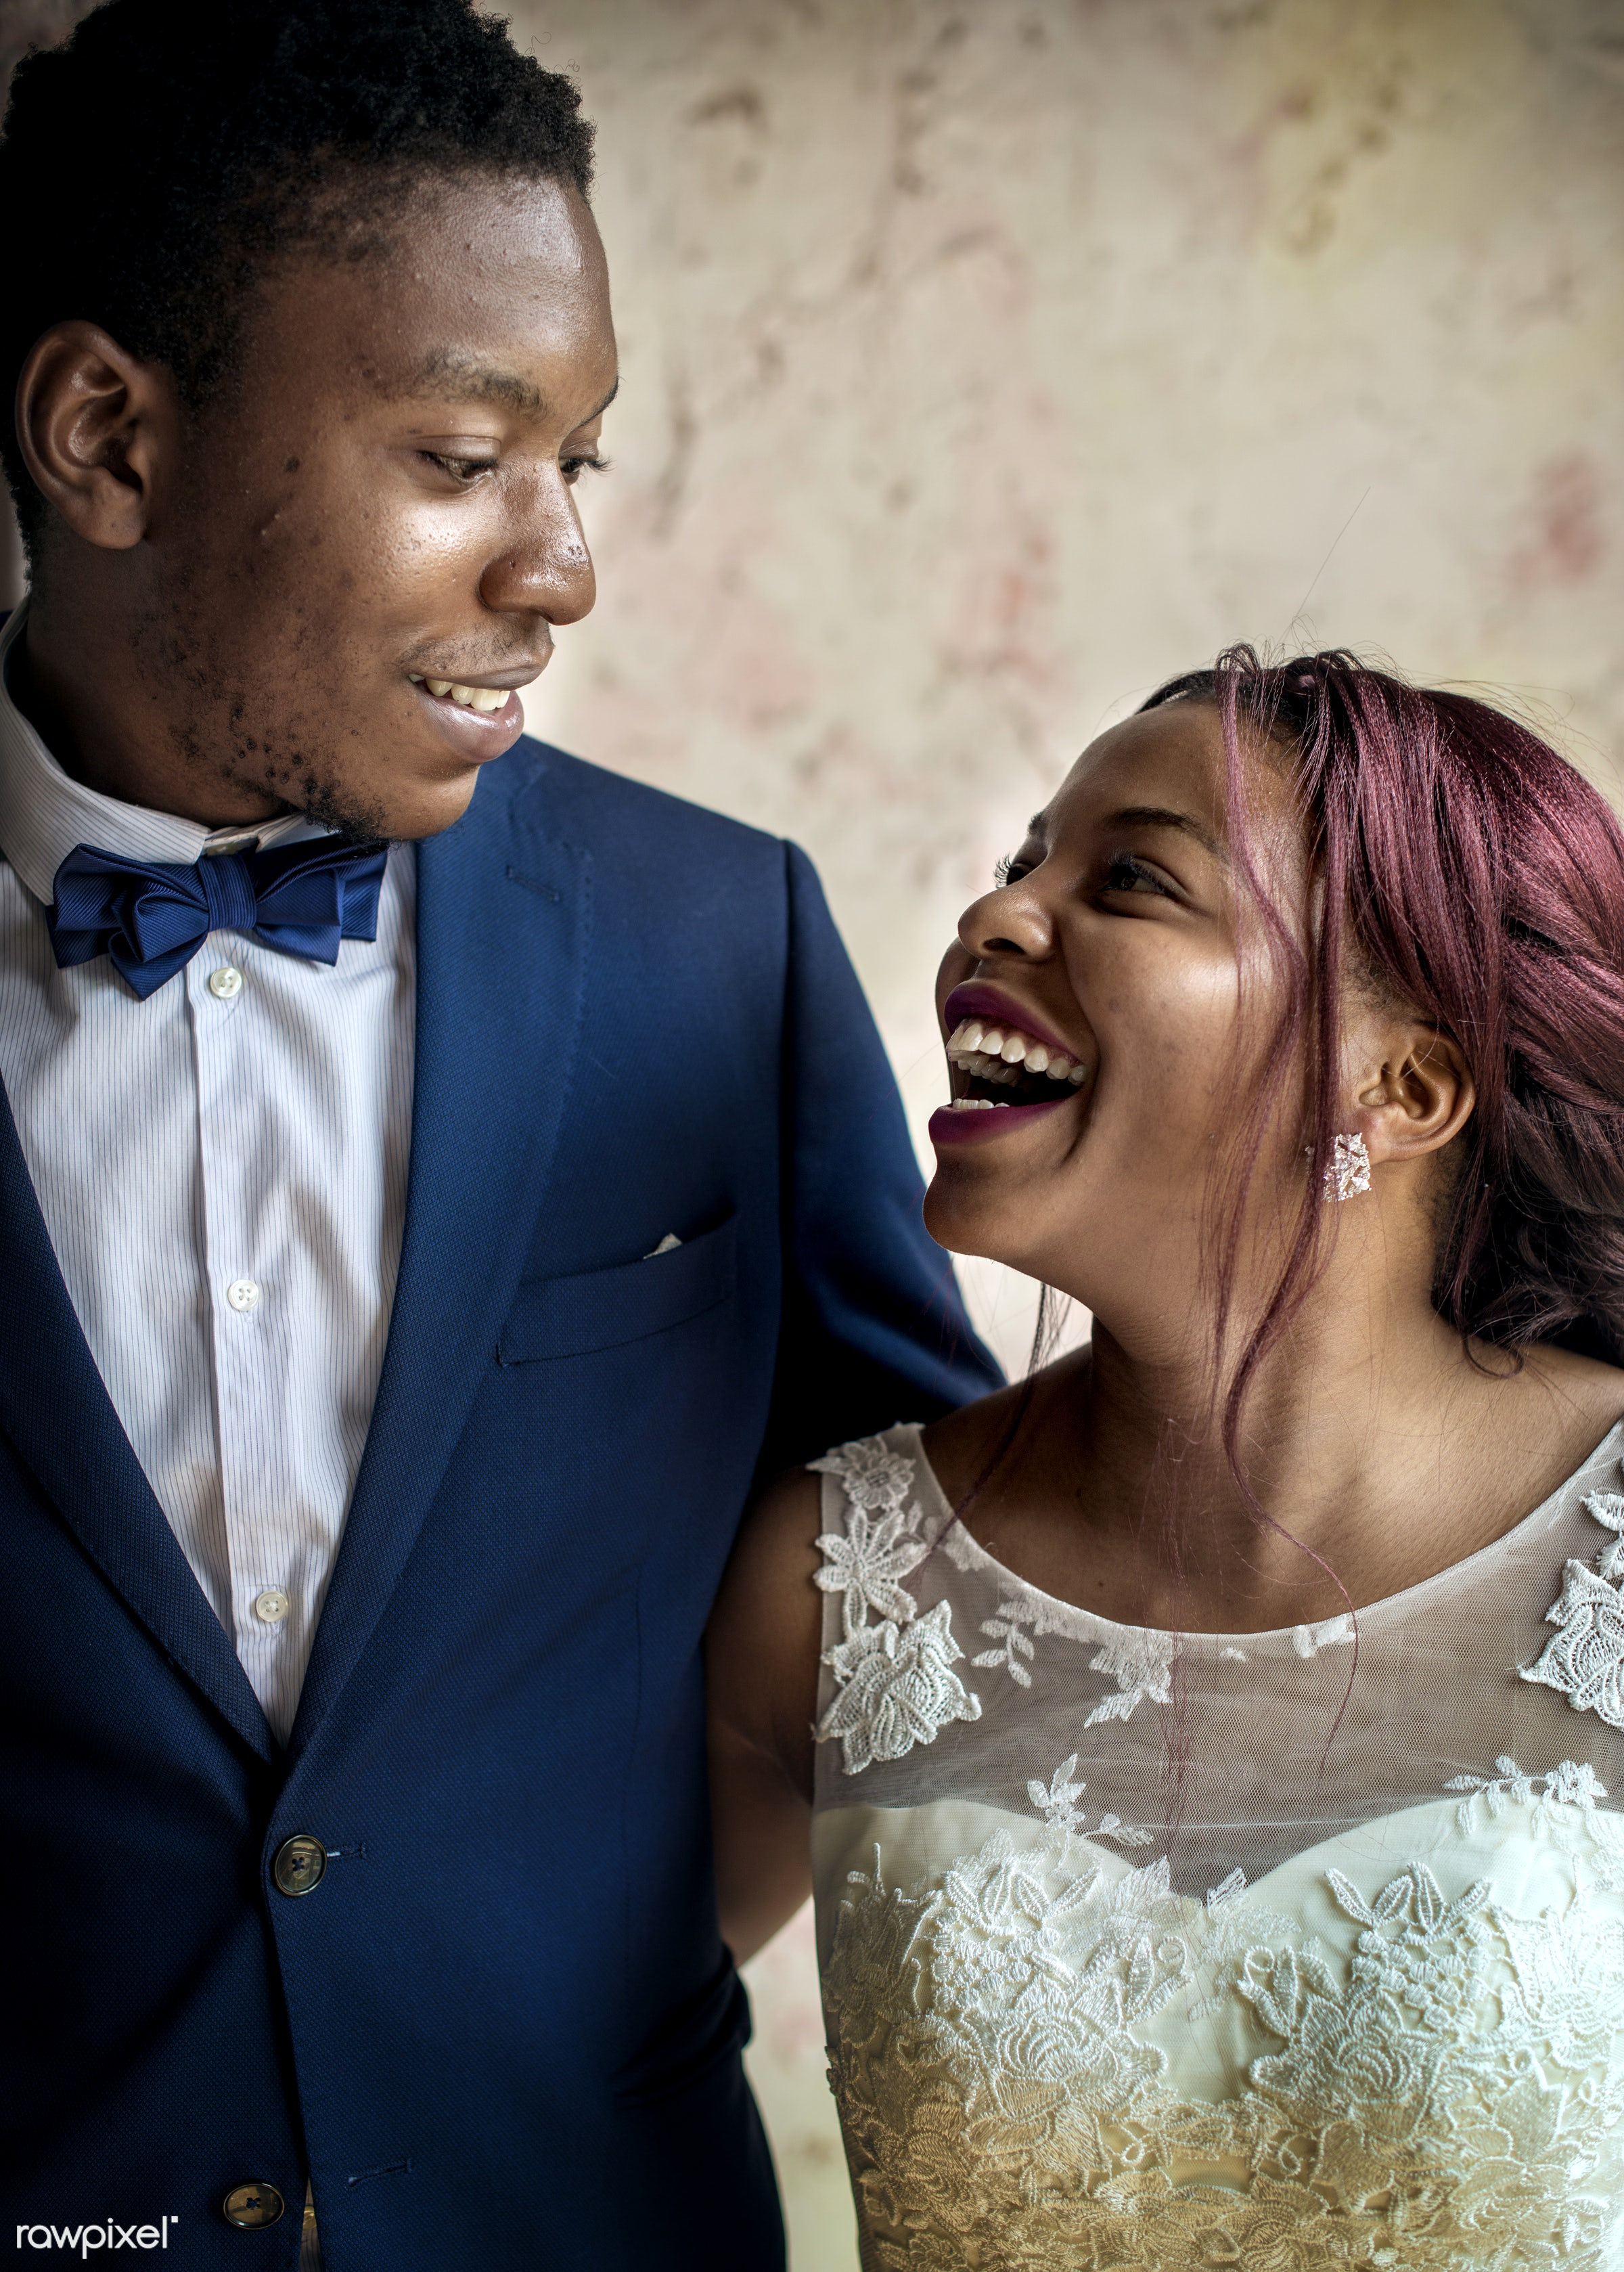 occasion, love, married, couple, bride, cheerful, smiling, black, closeup, african descent, newlywed, togetherness,...